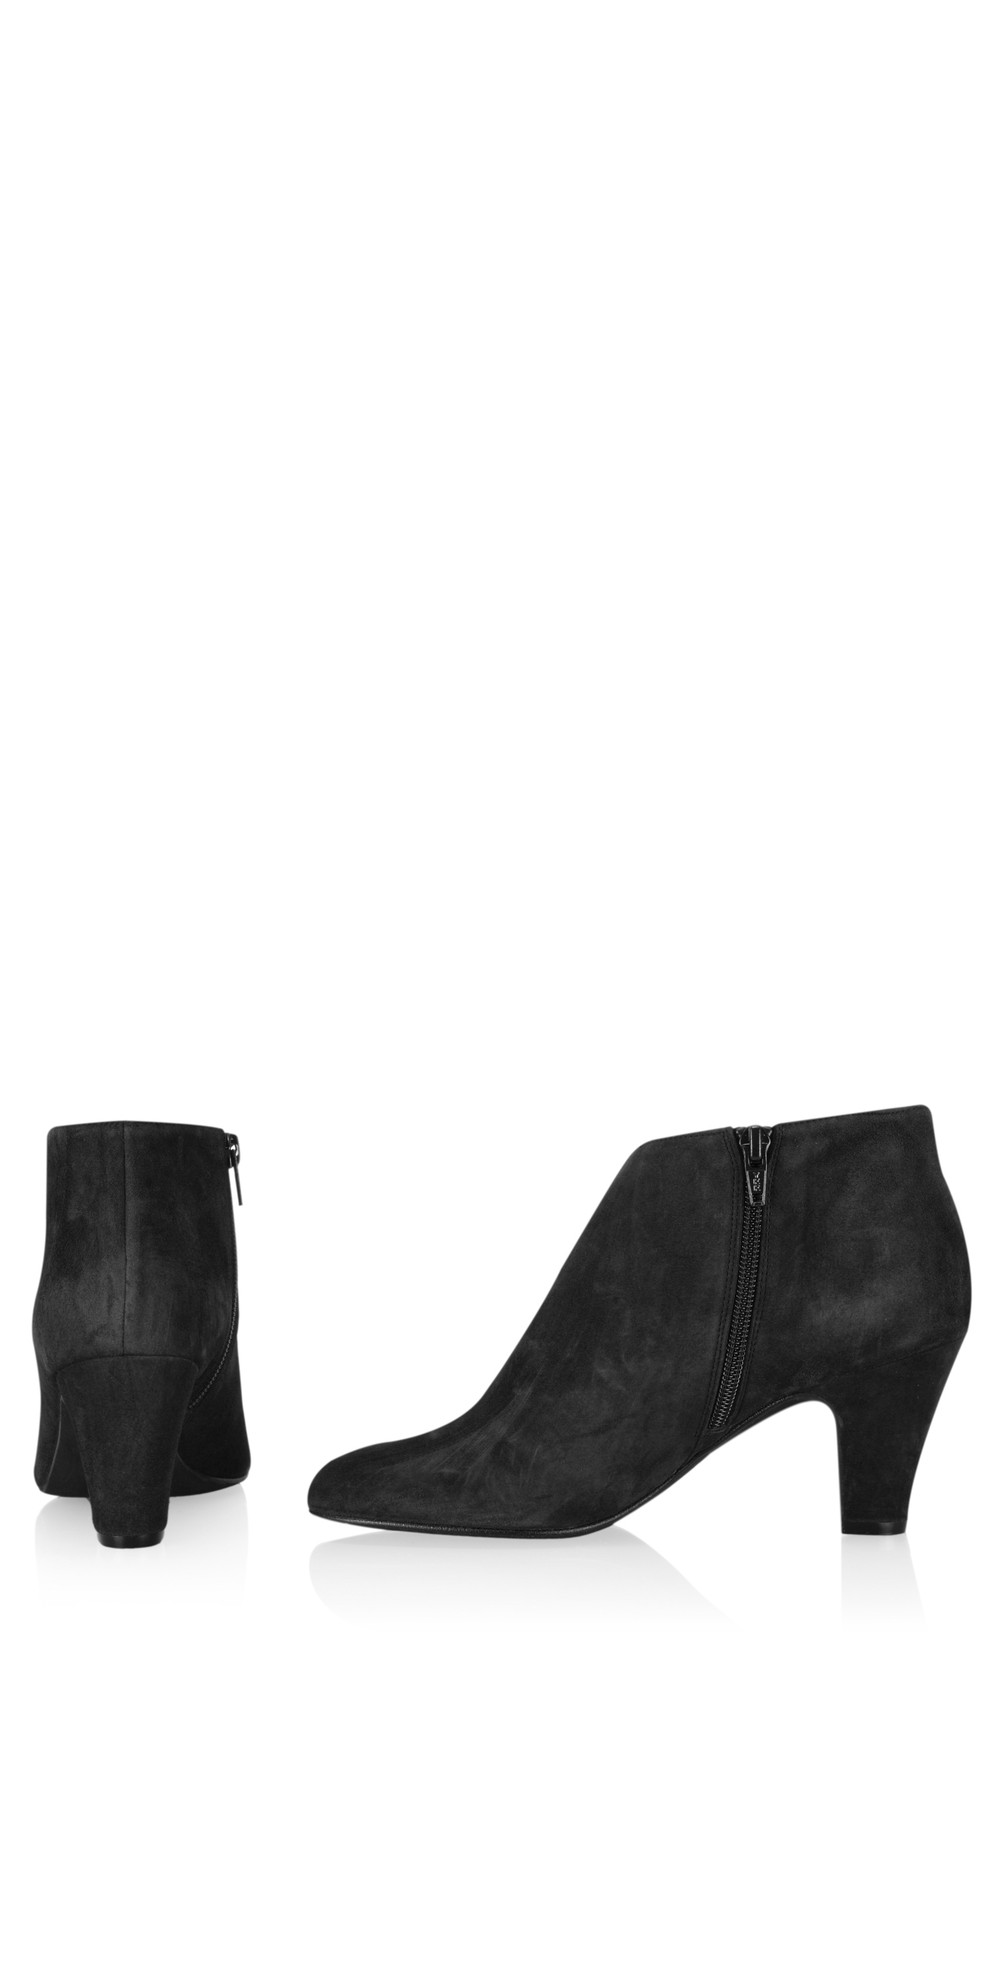 Xelipe Black Suede Ankle Boot main image